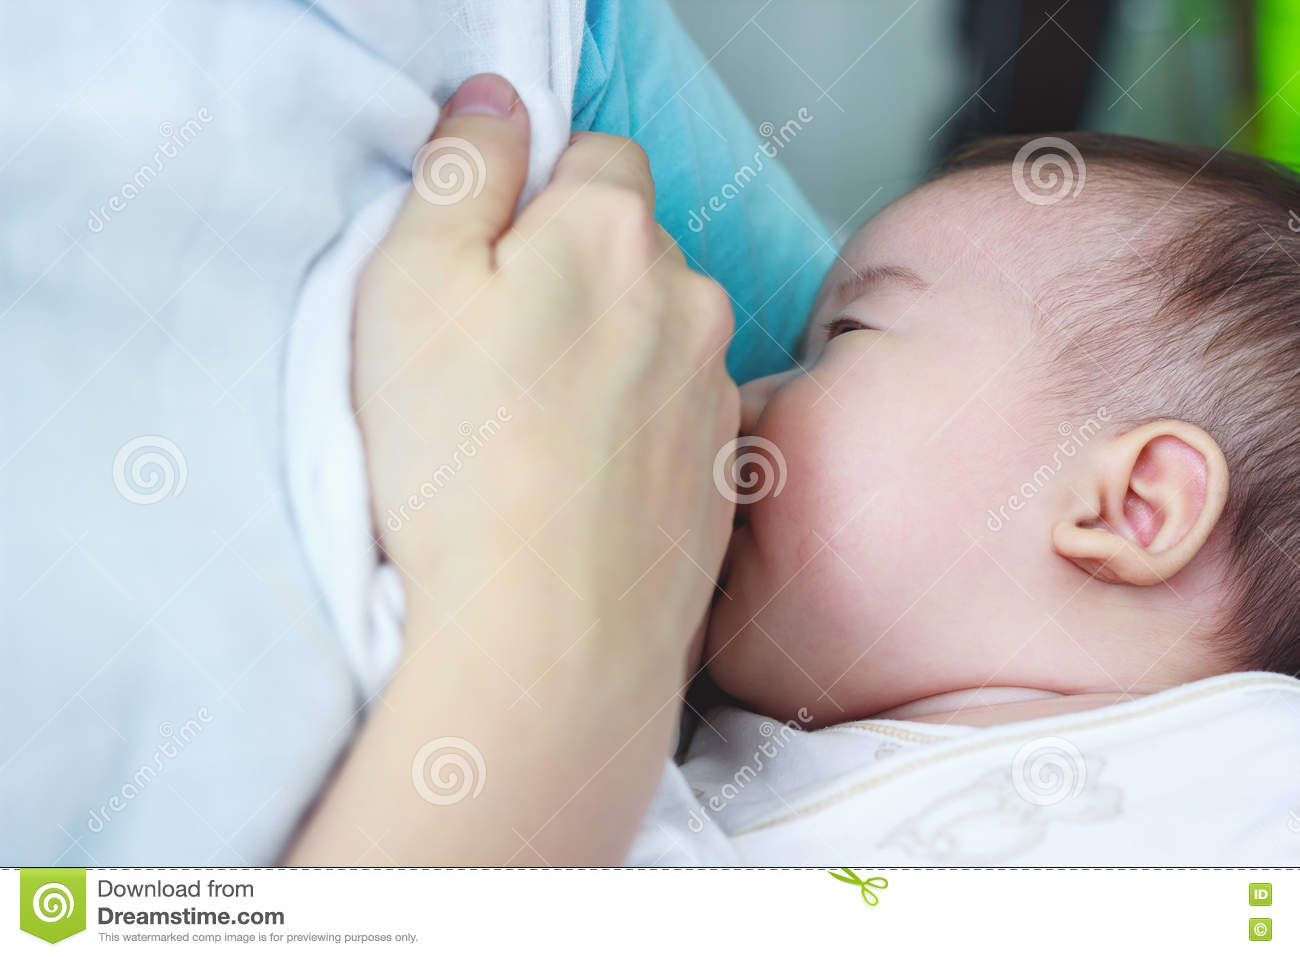 Agree with Infant breast milk